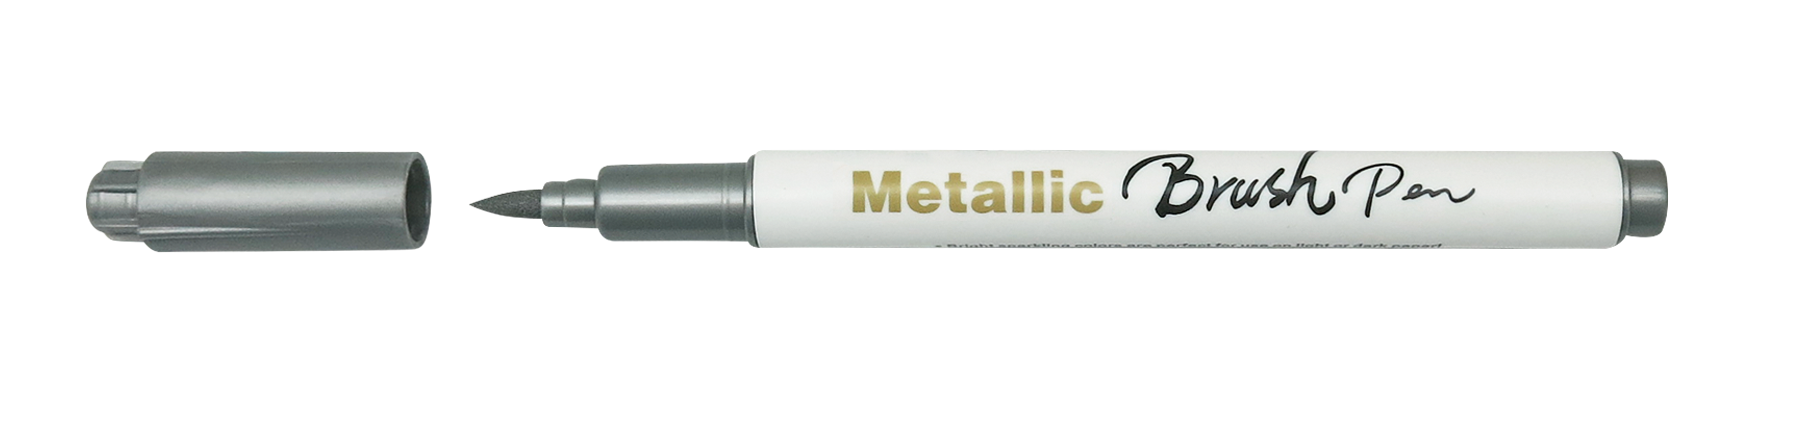 ES0293 Metallic Brush Pen